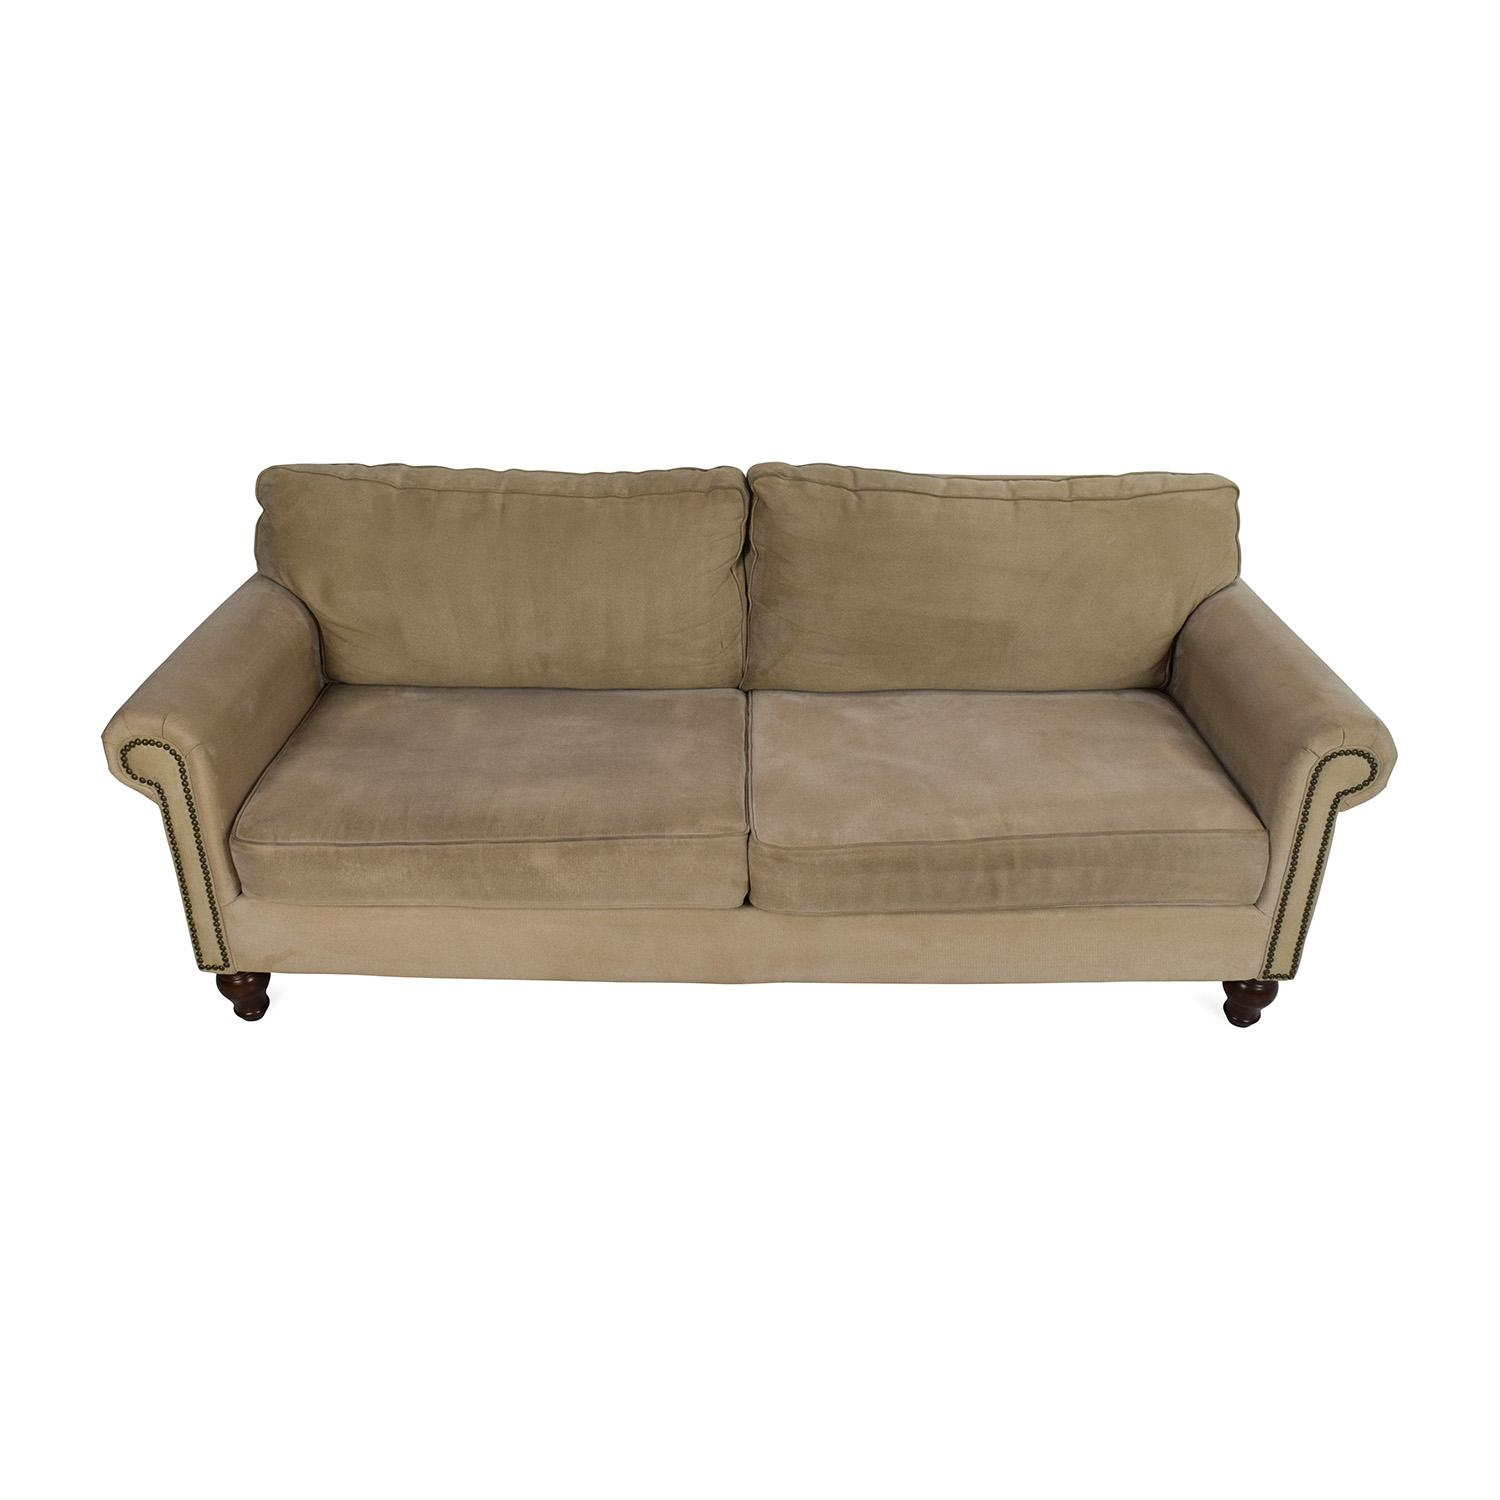 80% Off – Pier 1 Imports Pier 1 Alton Rolled Arm Sofa / Sofas Intended For Pier 1 Sofa Beds (Image 6 of 20)